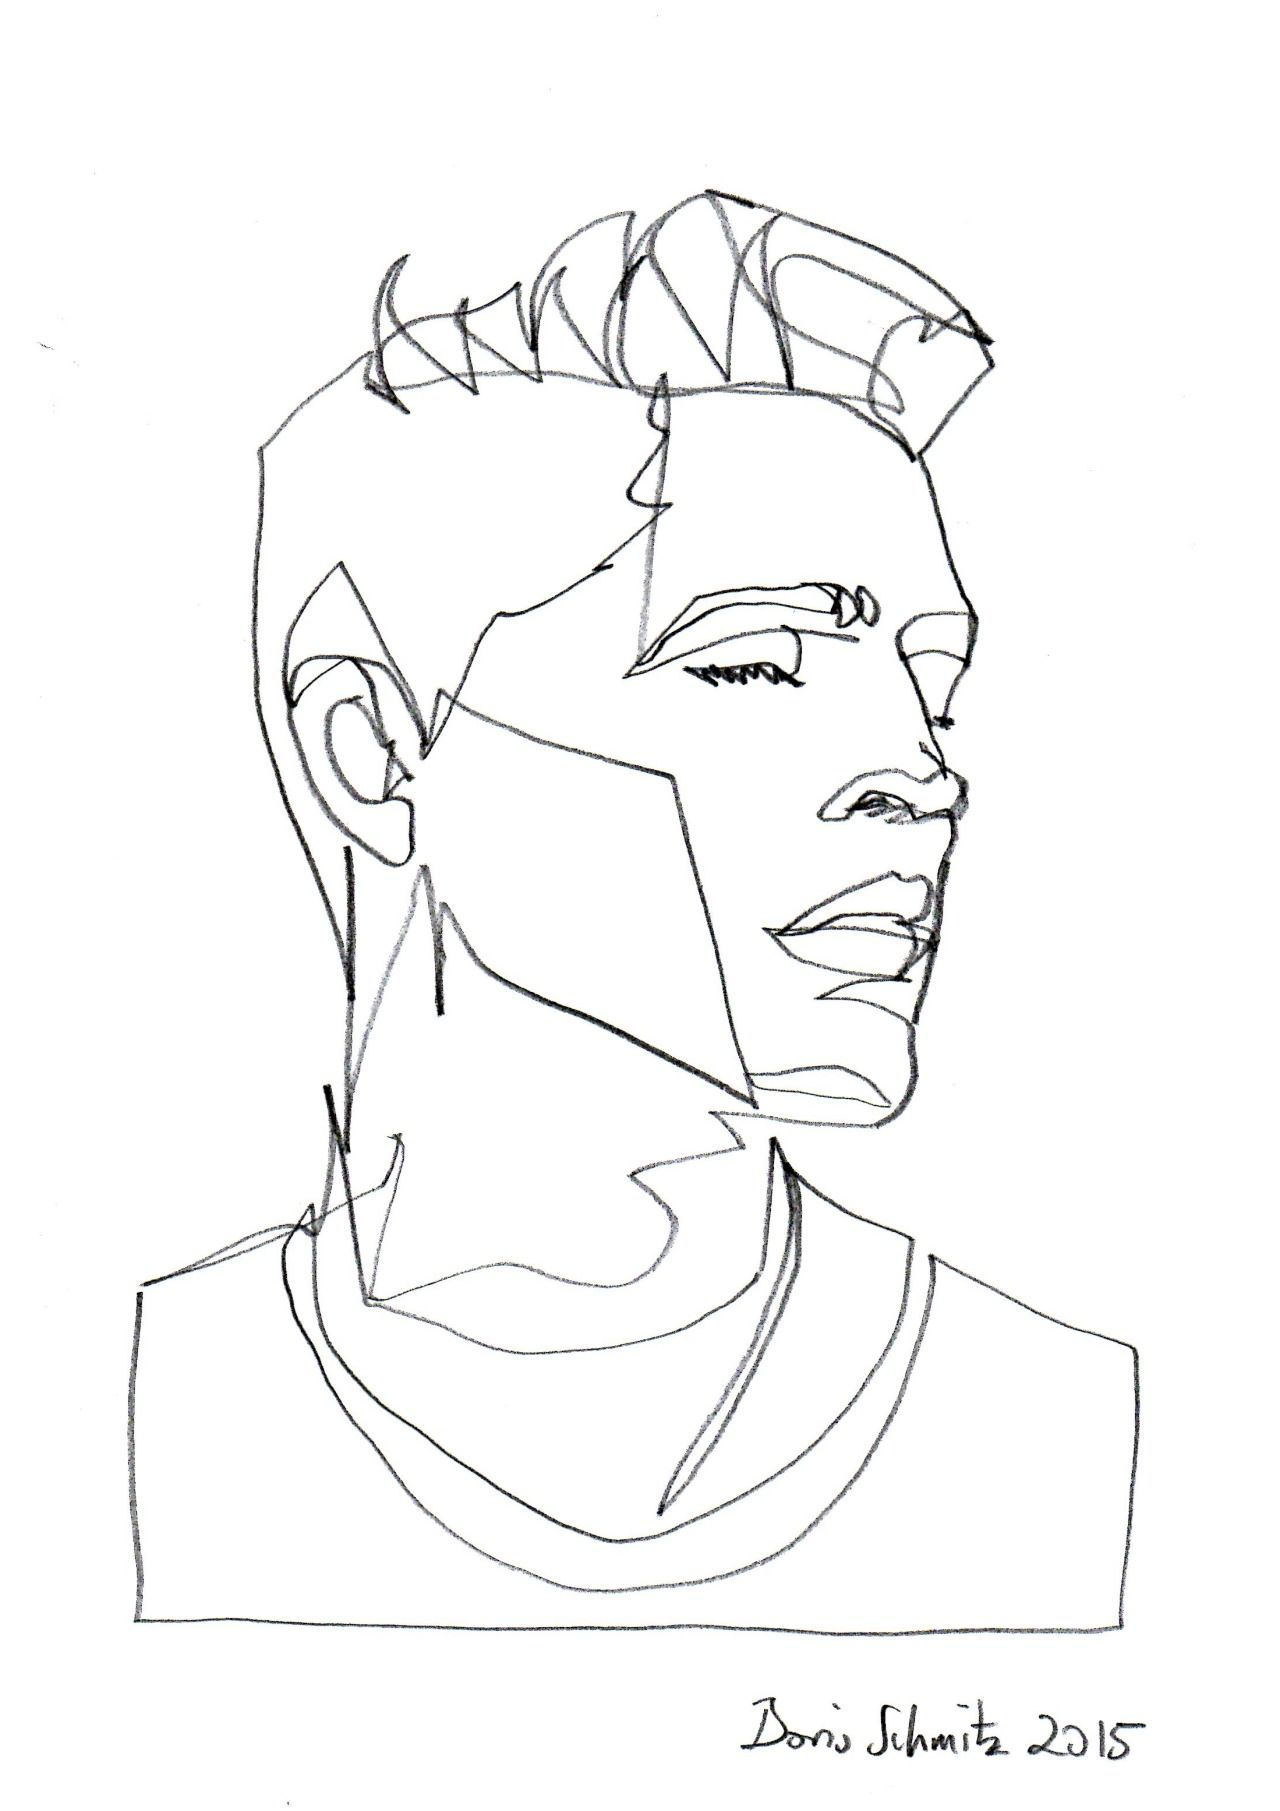 Continuous Line Drawing Of A Face : Borisschmitz quot gaze one continuous line drawing by